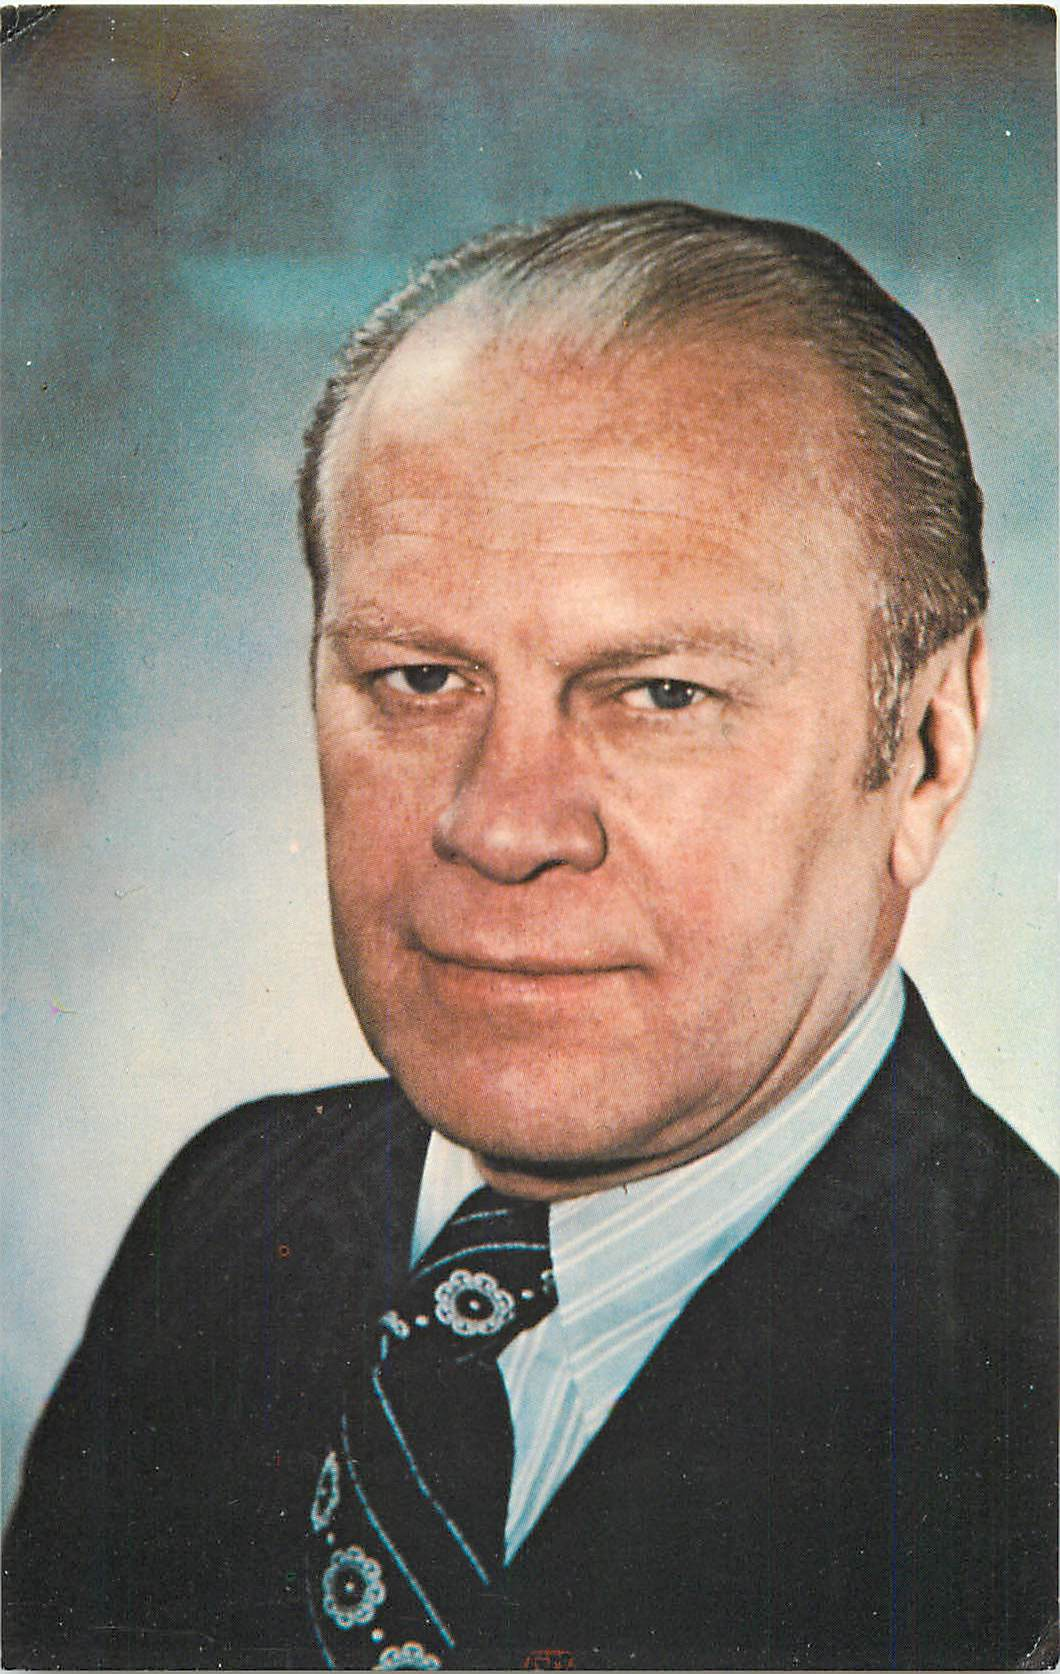 """Gerald Ford, 38th President of the United States"""